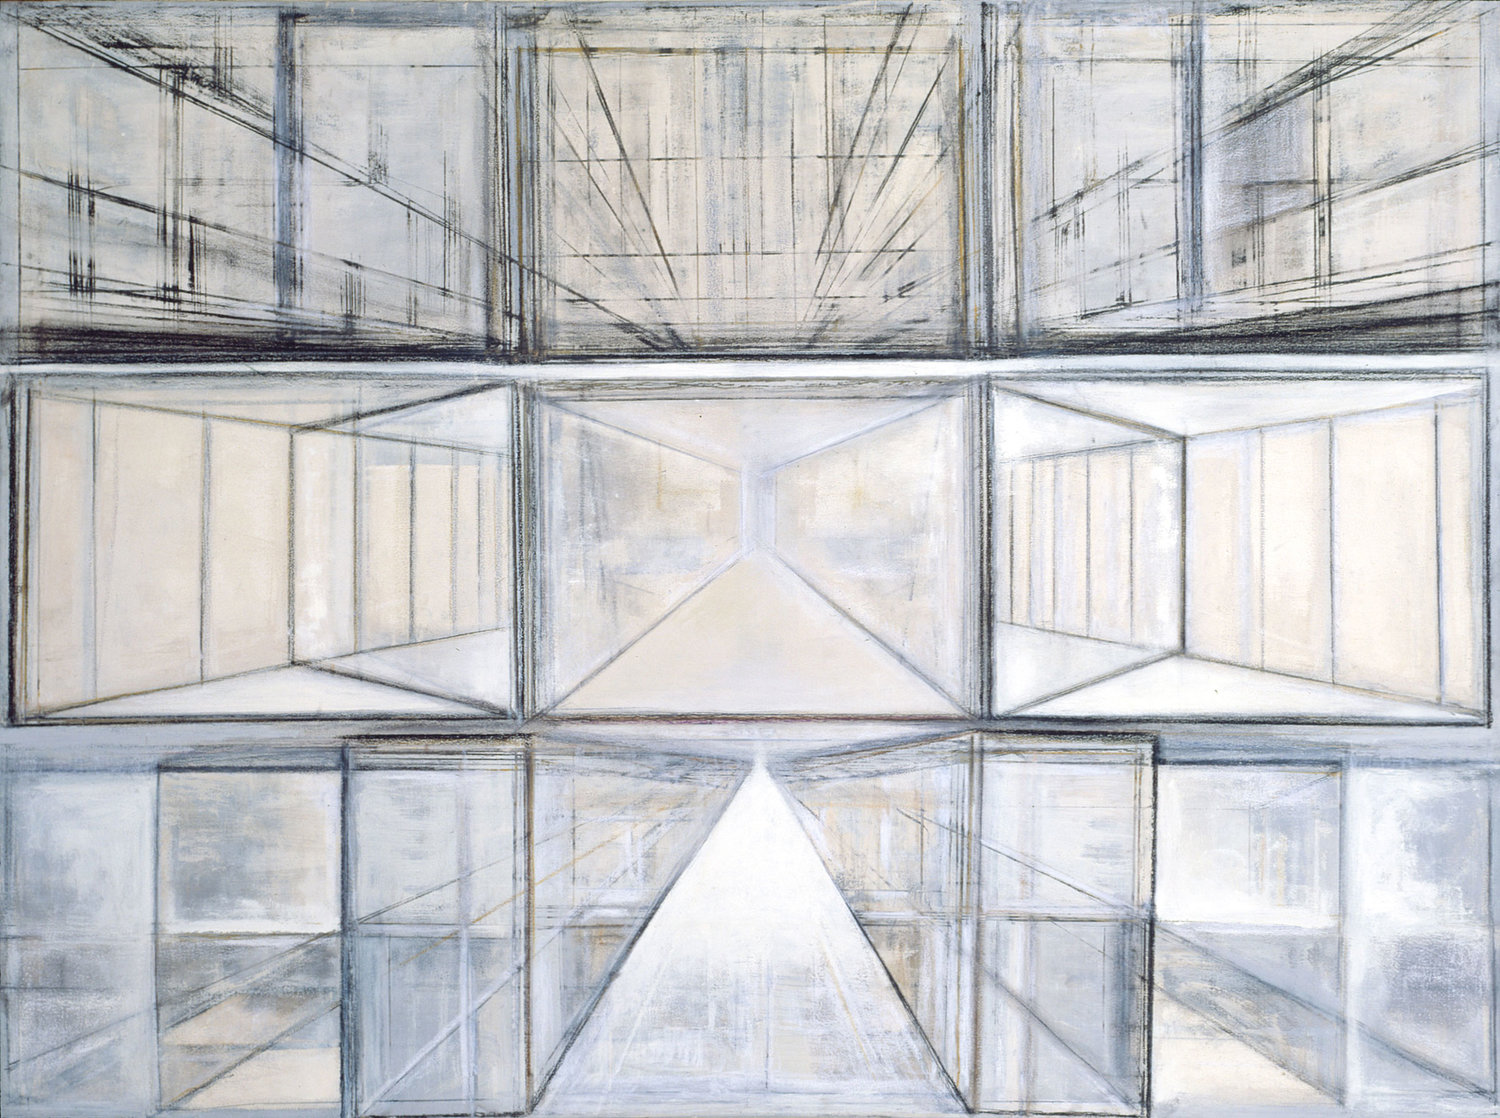 Hedda Sterne, Rectangles , 1981, Acrylic on canvas, 54 x 72 in., Collection of the Queens Museum, New York